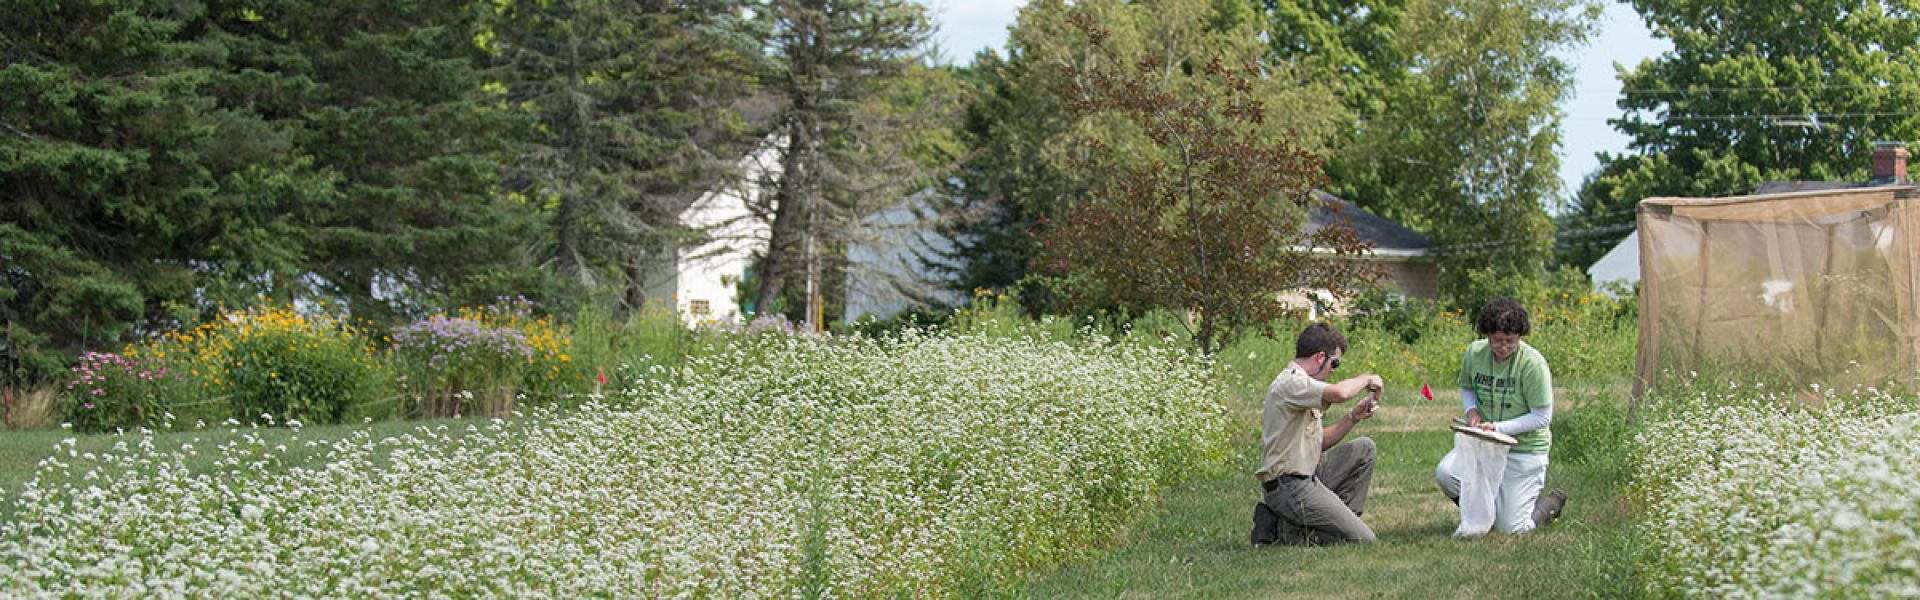 UNH sustainability students conduct field research